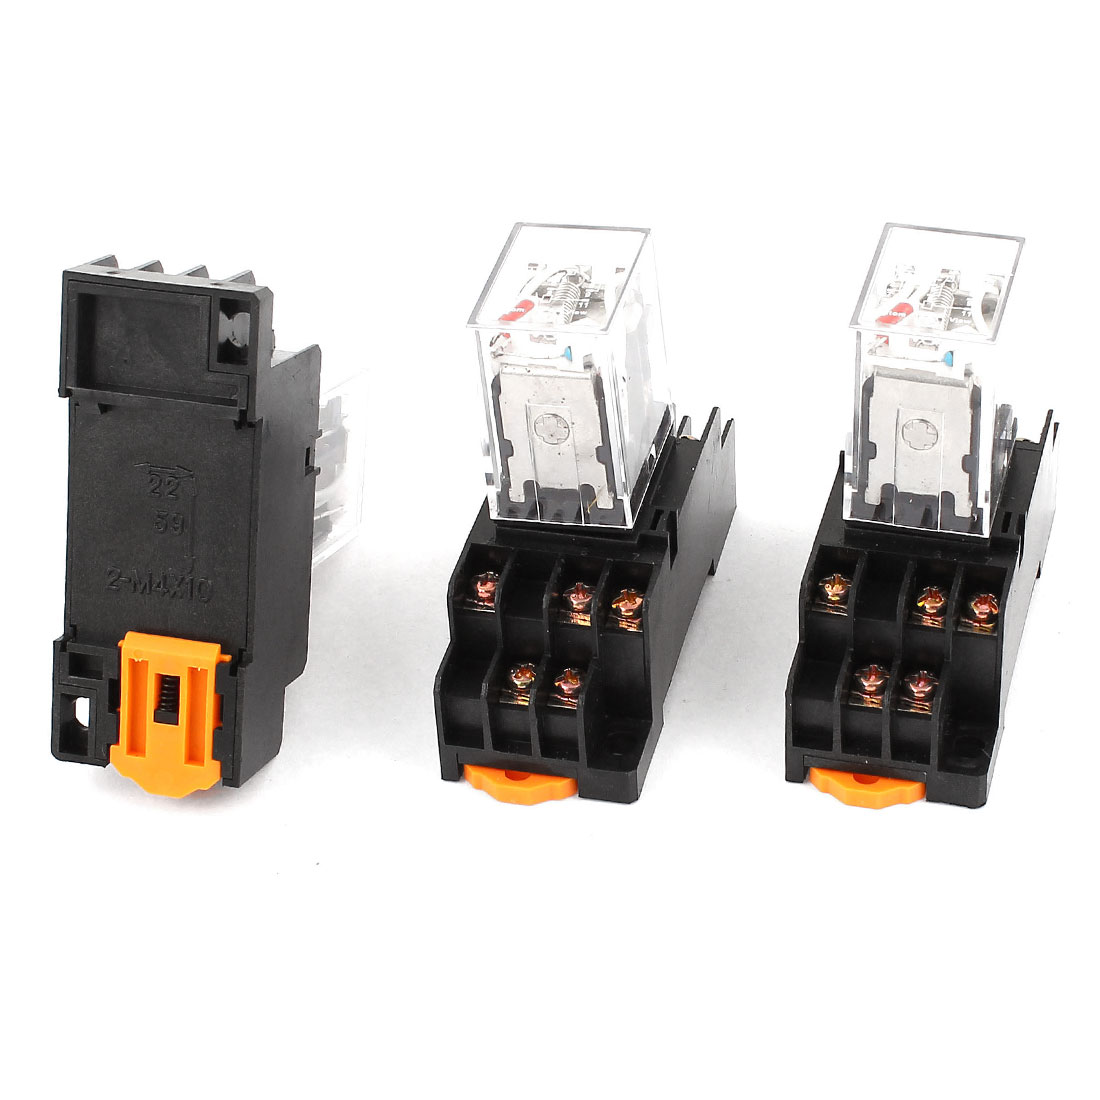 3 Pcs HH53PL AC 220-240V Coil Red Indicator Light 35mm DIN Rail 3PDT 11Pins Electromagnetic General Purpose Power Relay + Socket Base